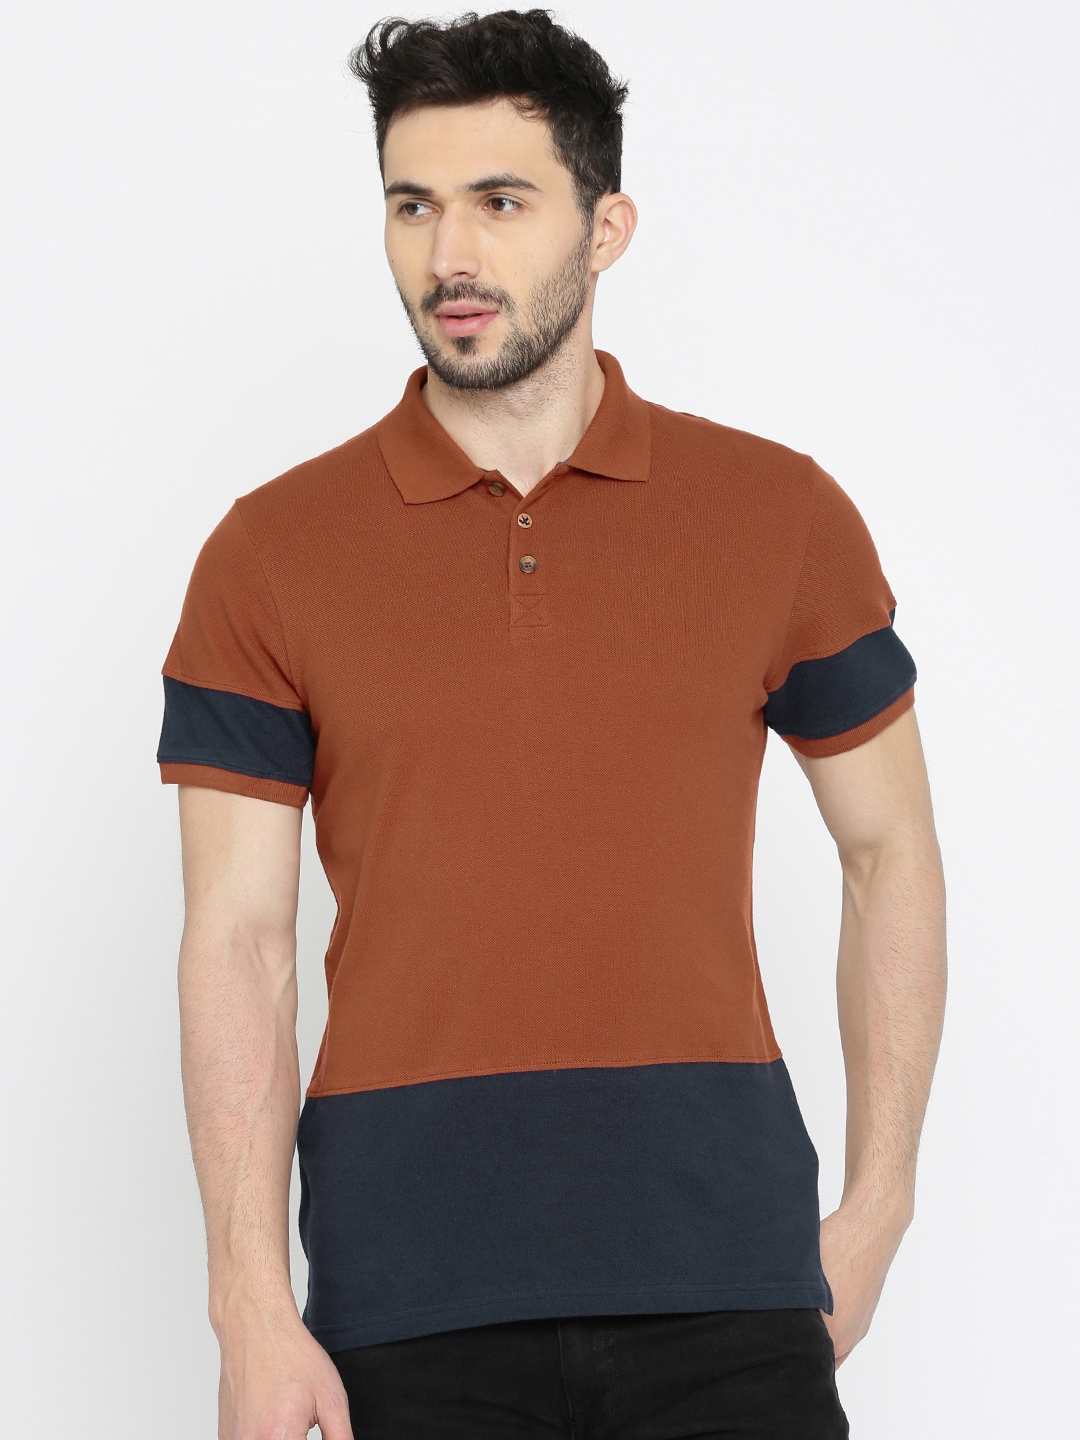 c2760af4 Men T-shirts - Buy T-shirt for Men Online in India | Myntra